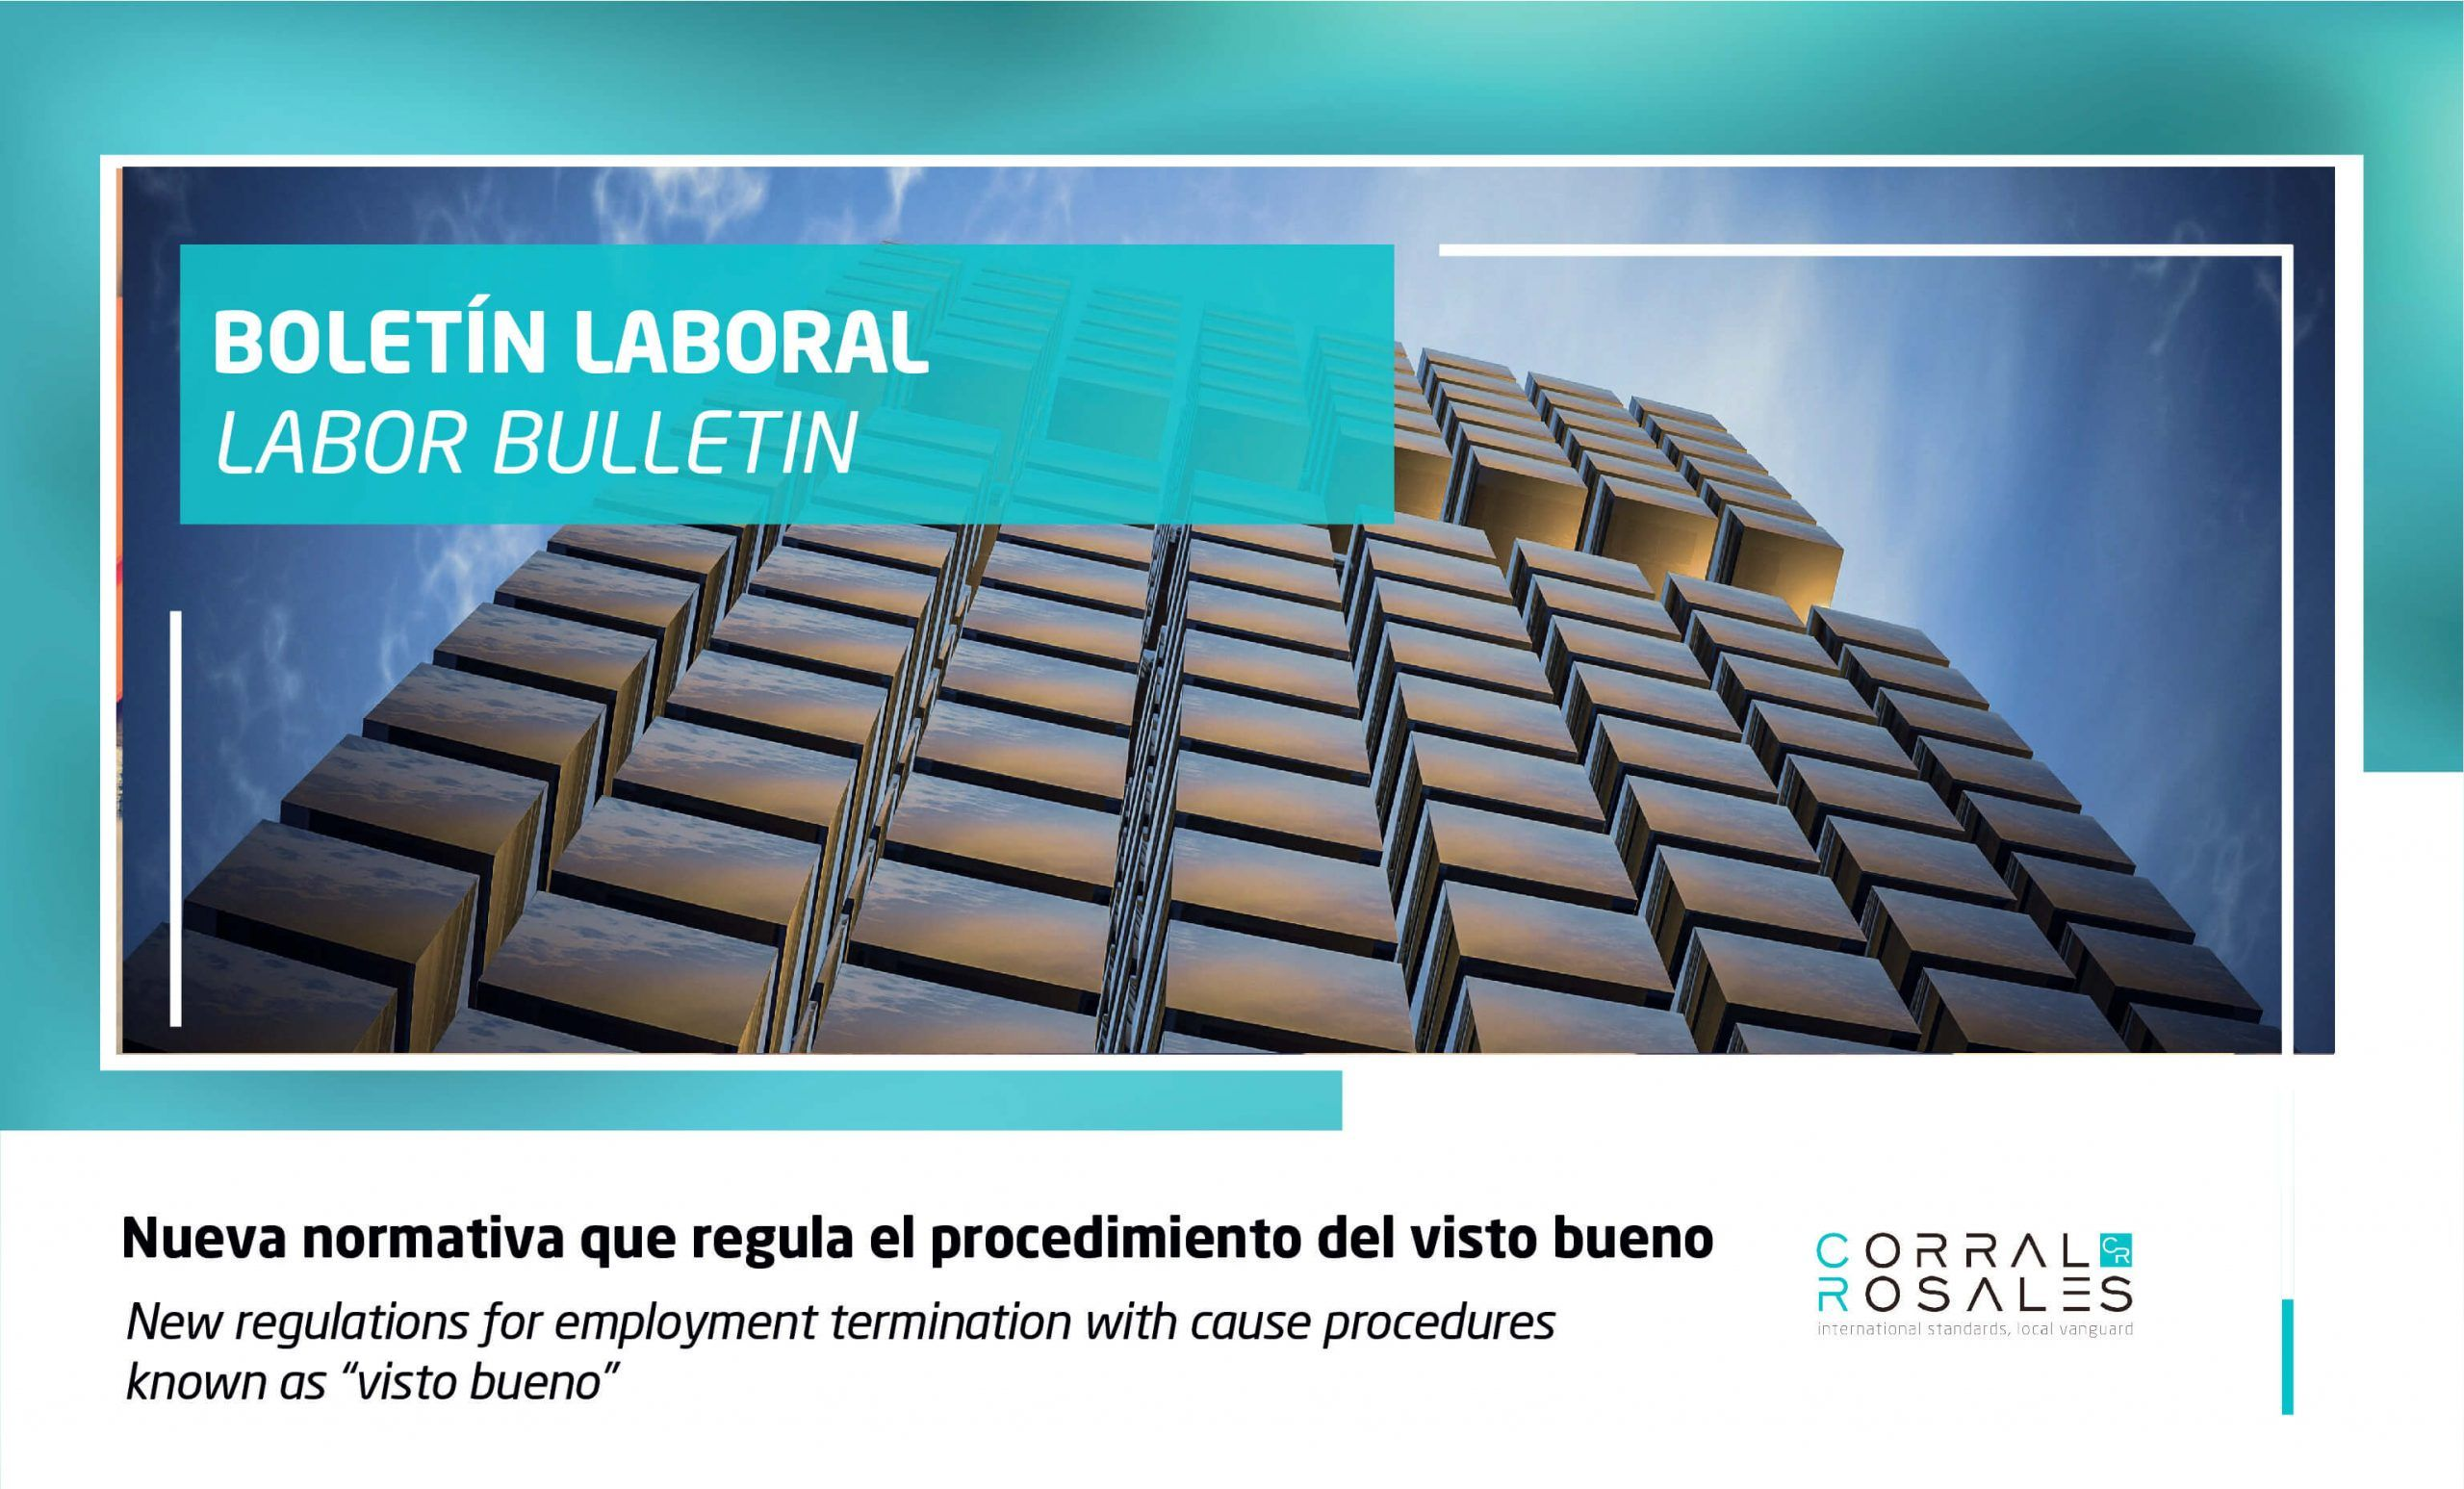 """New regulations for employment termination with cause procedures known as """"visto bueno"""" - CorralRosales - Lawyers Ecuador - Latam"""